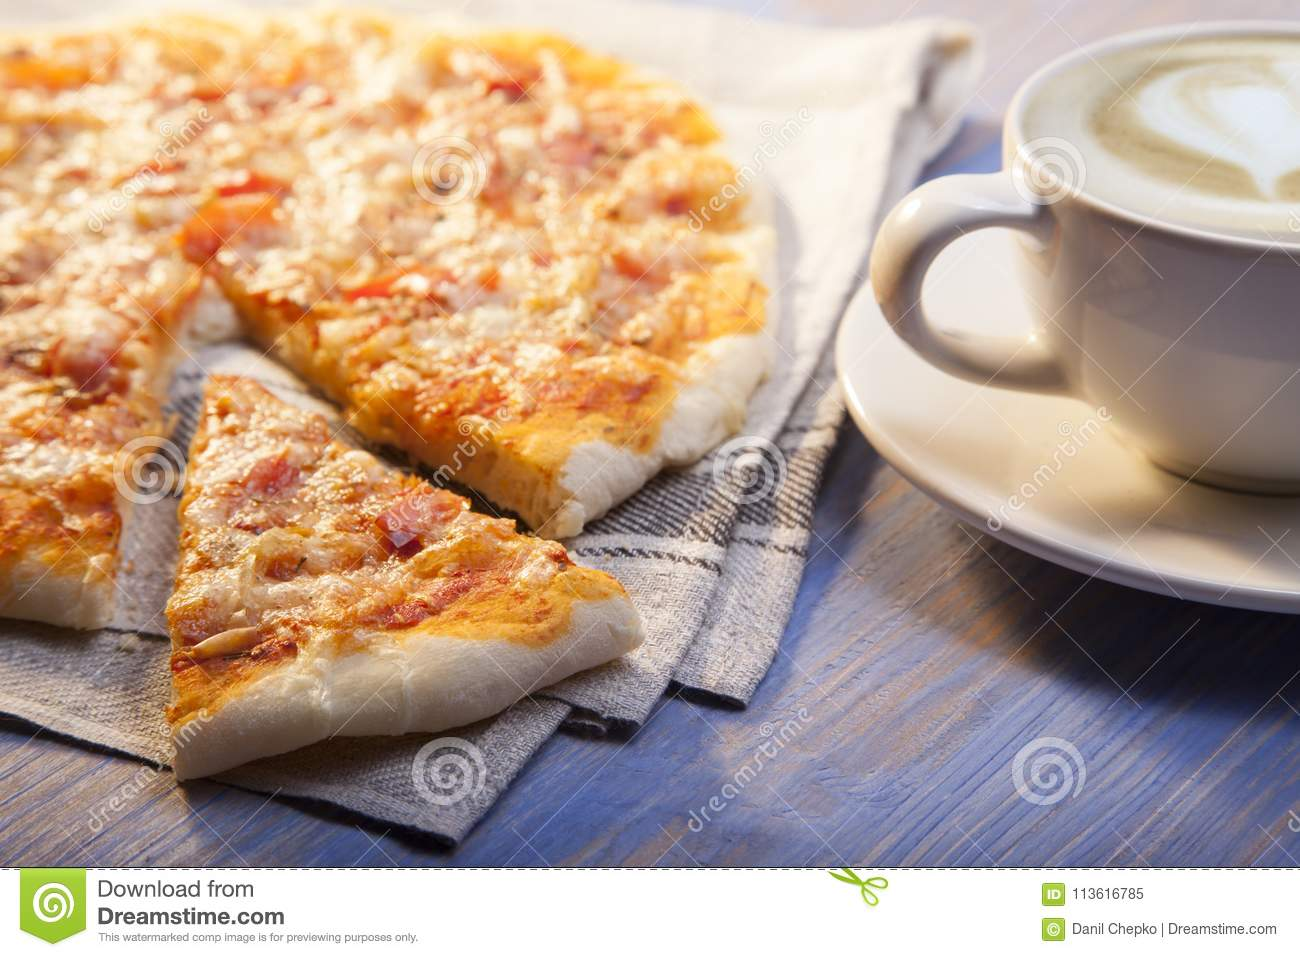 Pizza and Coffee on wooden table, cup of cappuccino.